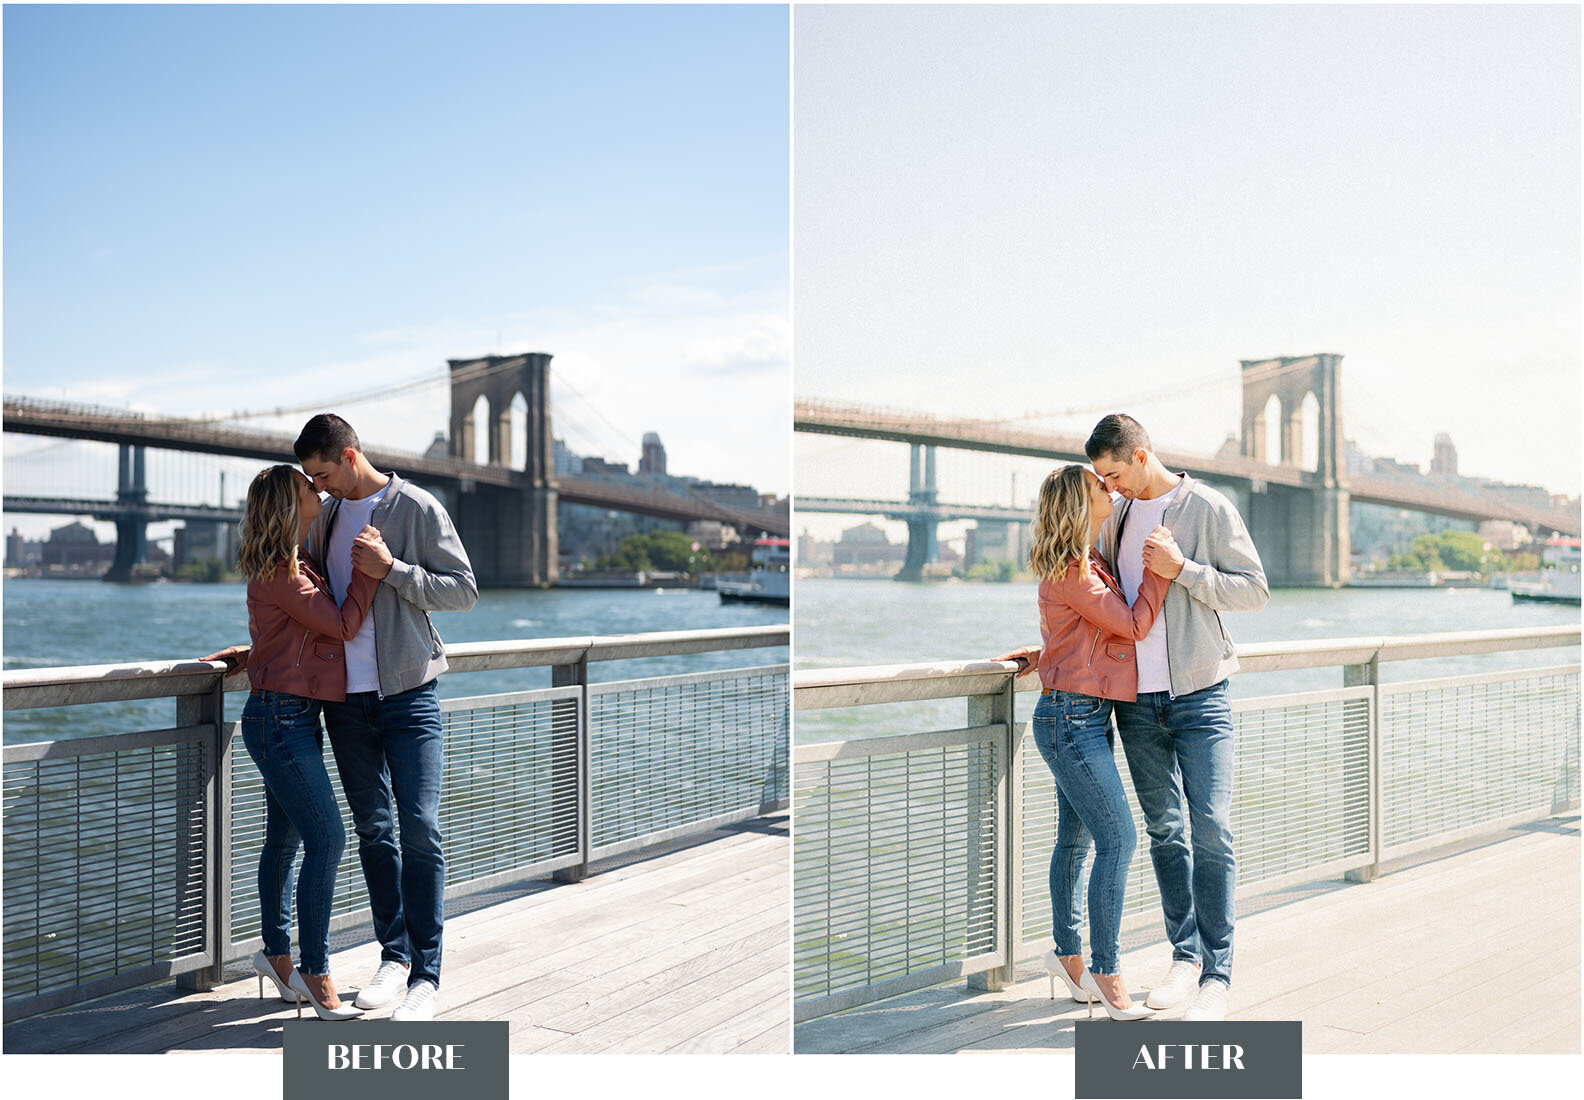 goodlight presets before after color pack 1 - 1.jpg